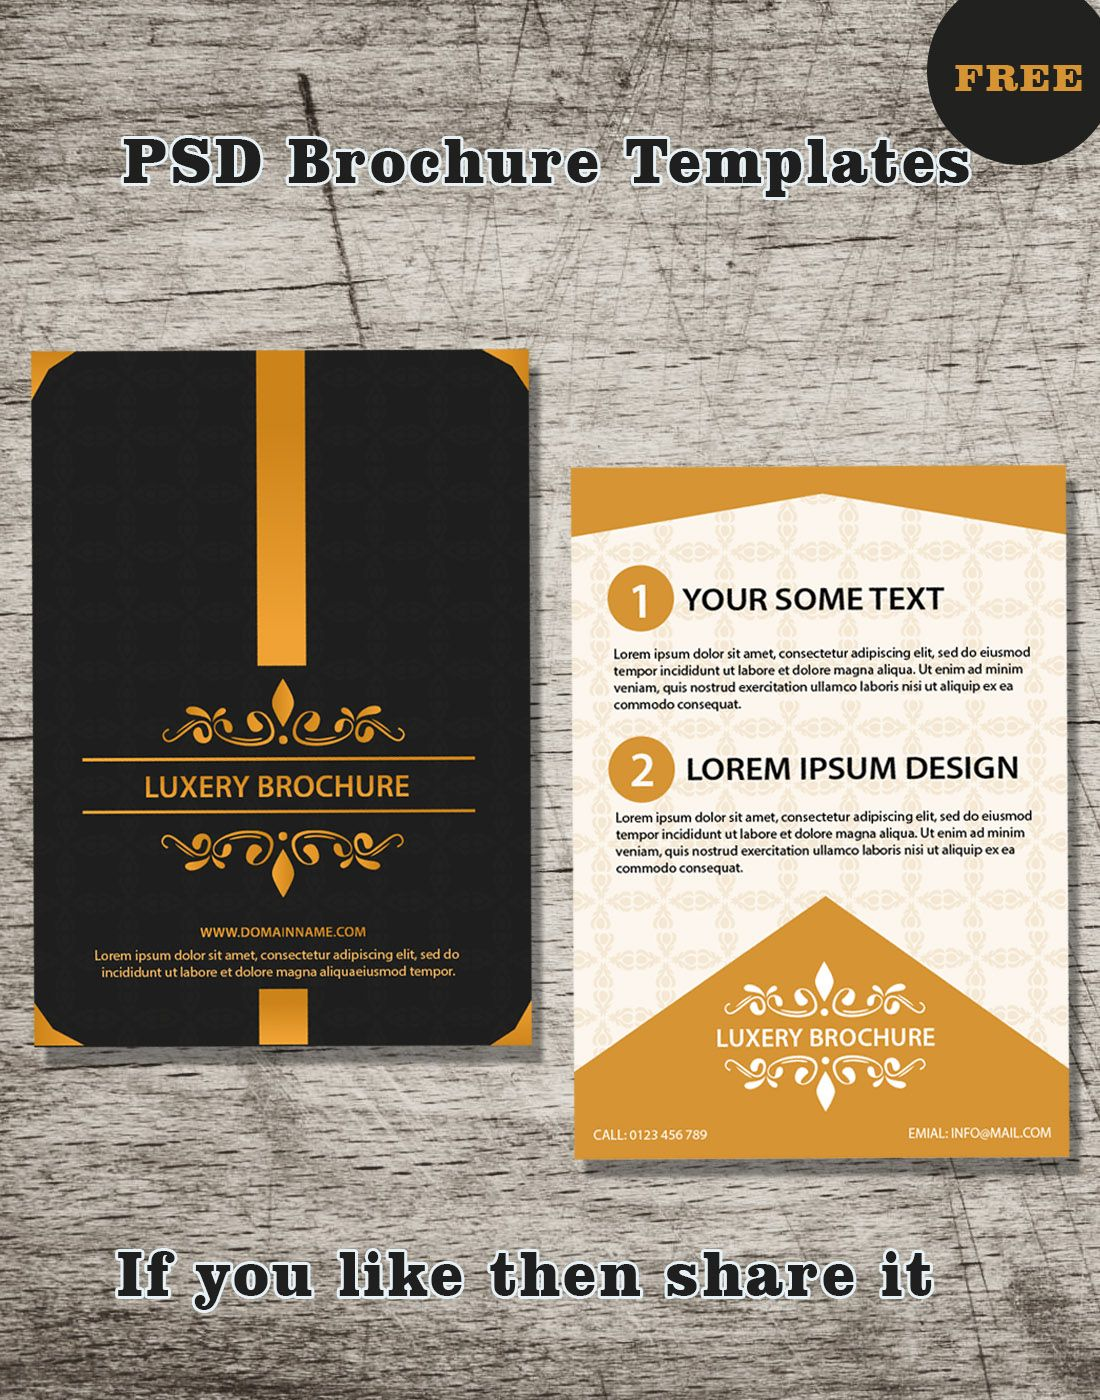 Free Brochure Psd Templates  Brochure Design    Free